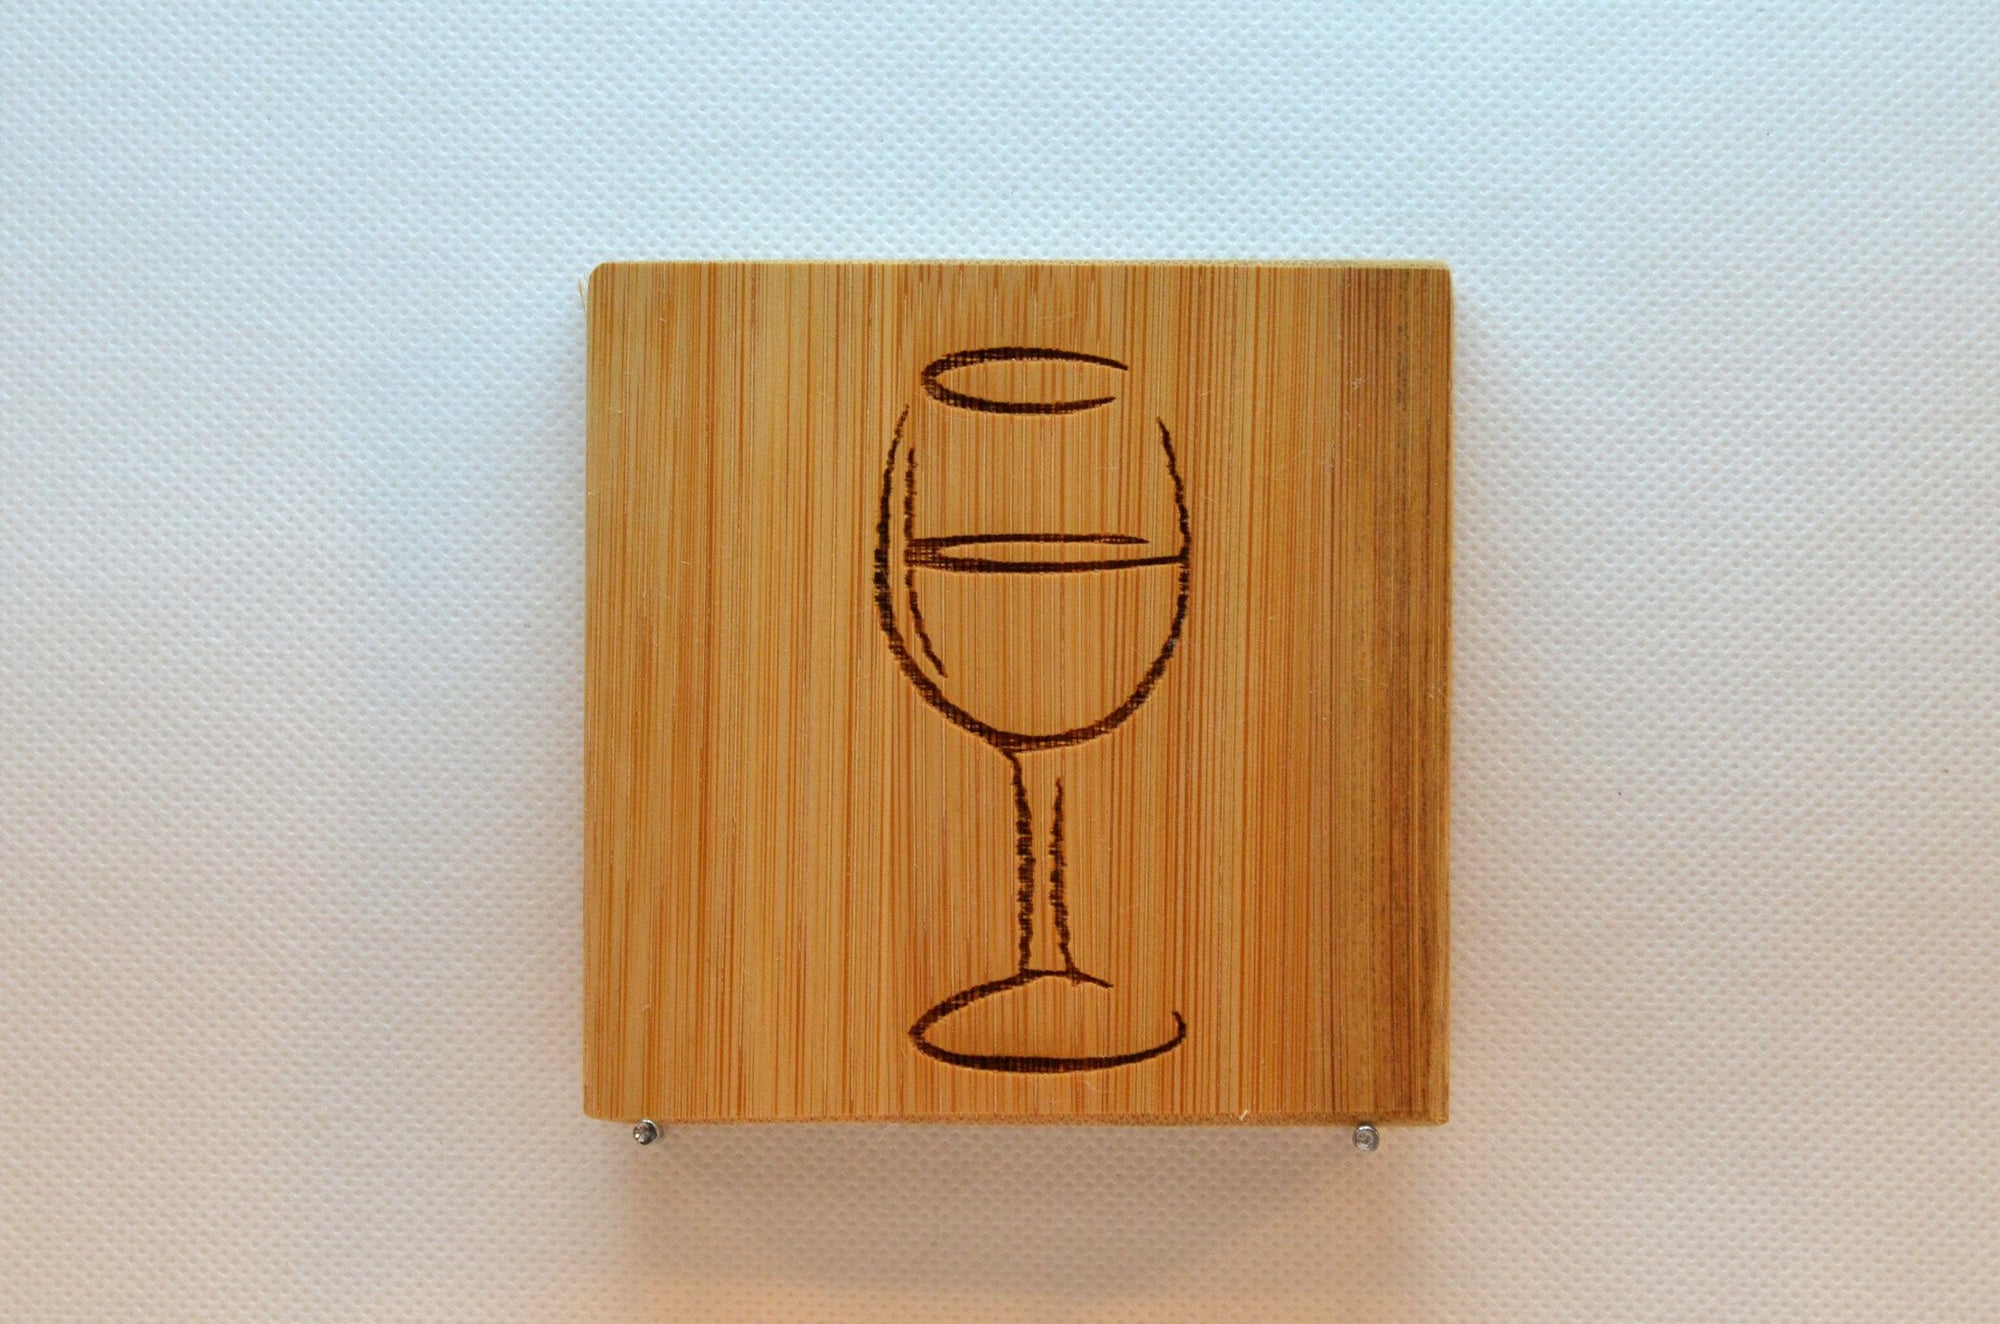 Laser Engraved Bamboo Coaster - Wine glass silhouette